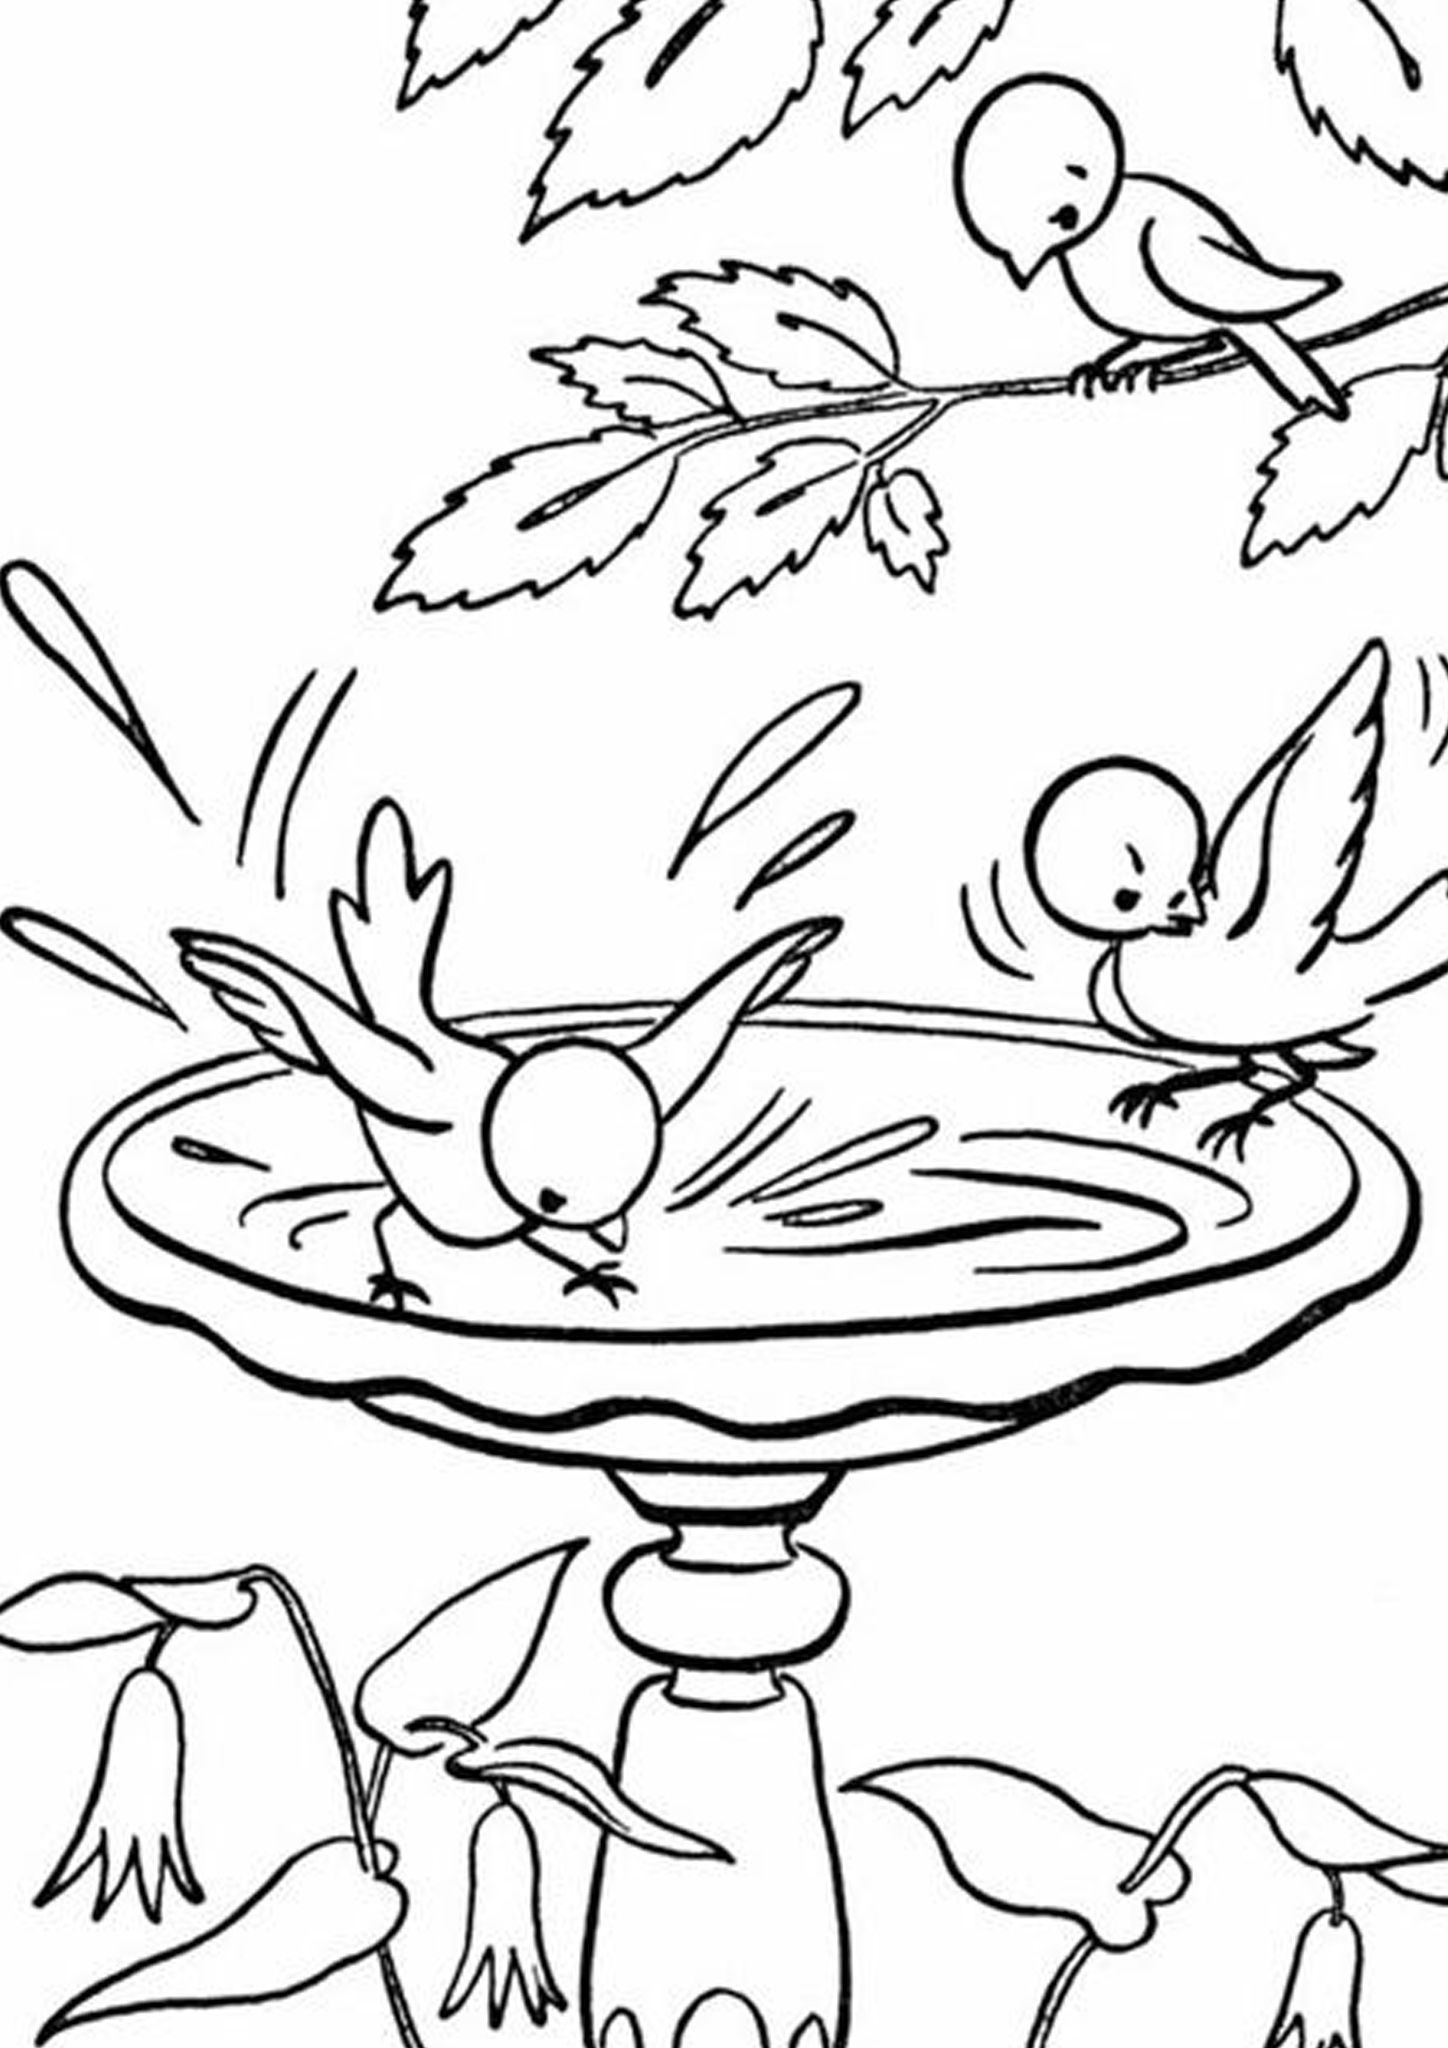 Free & Easy To Print Bird Coloring Pages in 2020 Bird